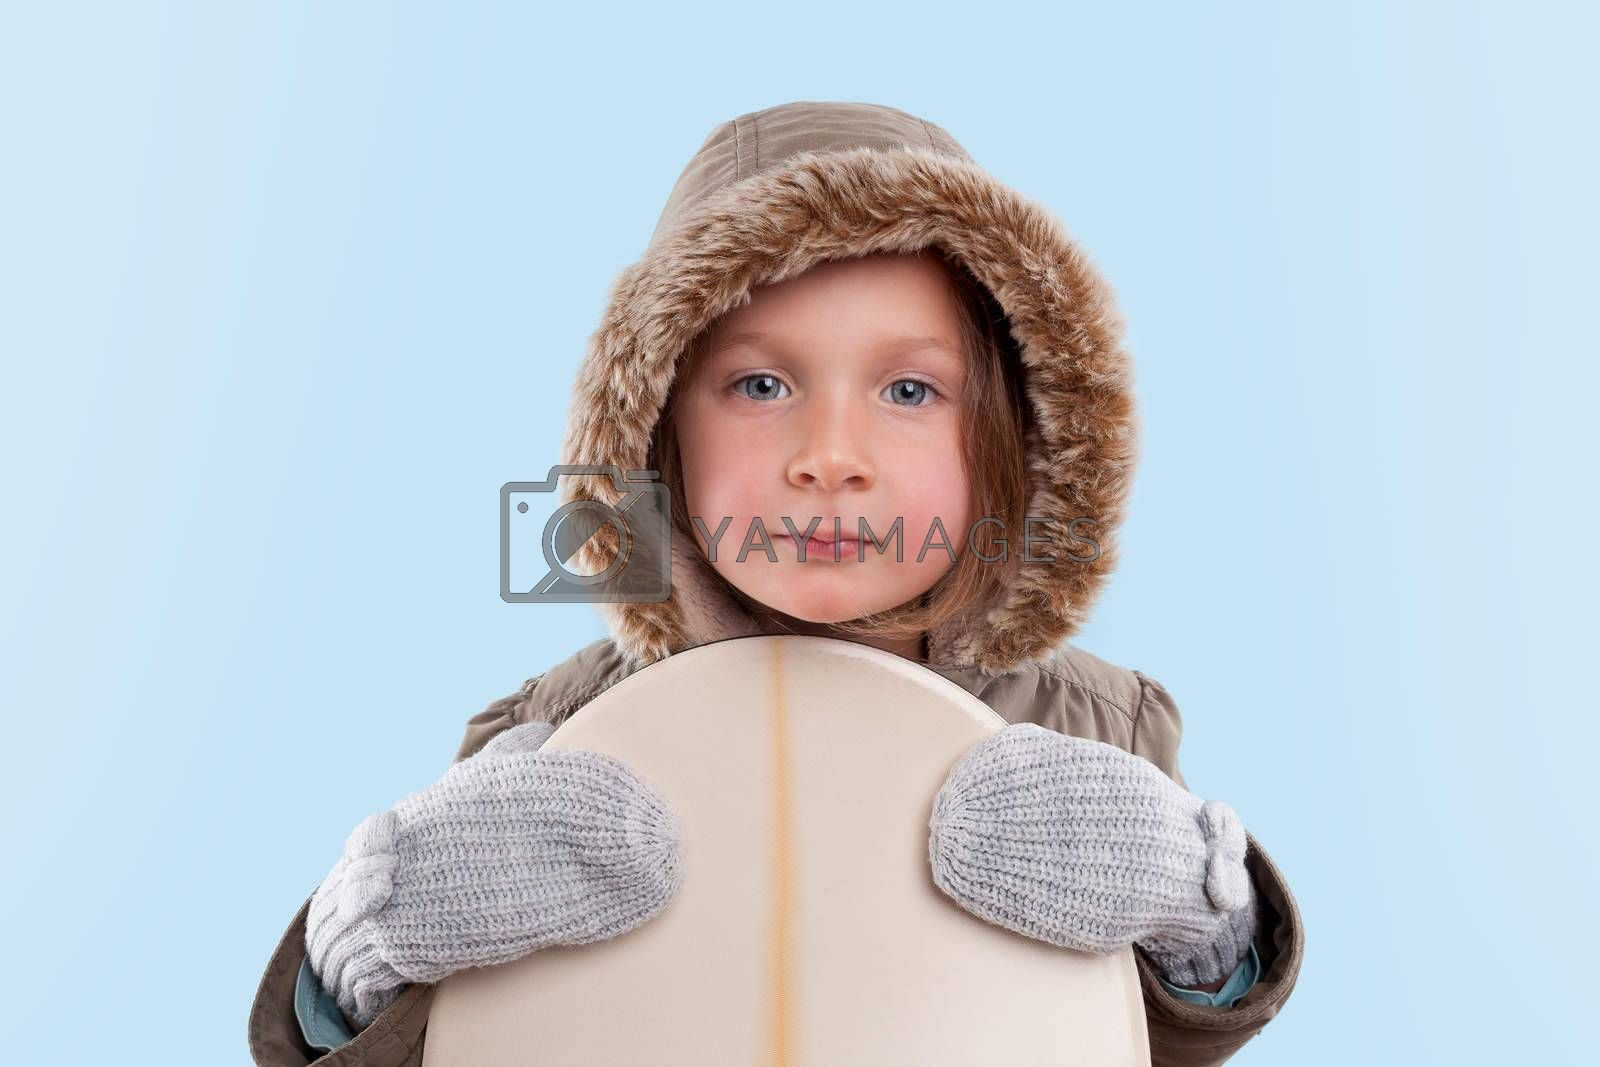 Little snowboarder. Cute little girl holding snowboard against light blue background.